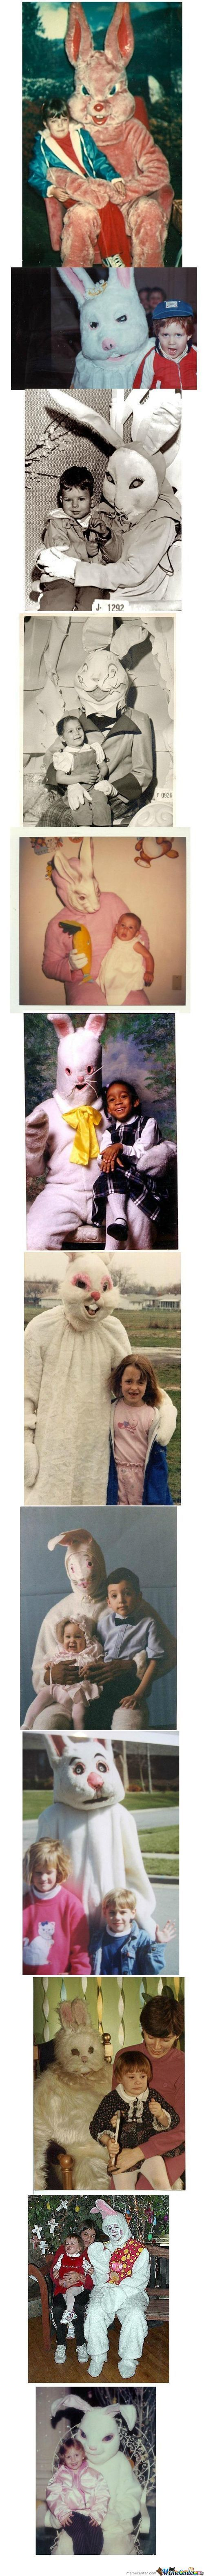 Demonic Easter Bunnies